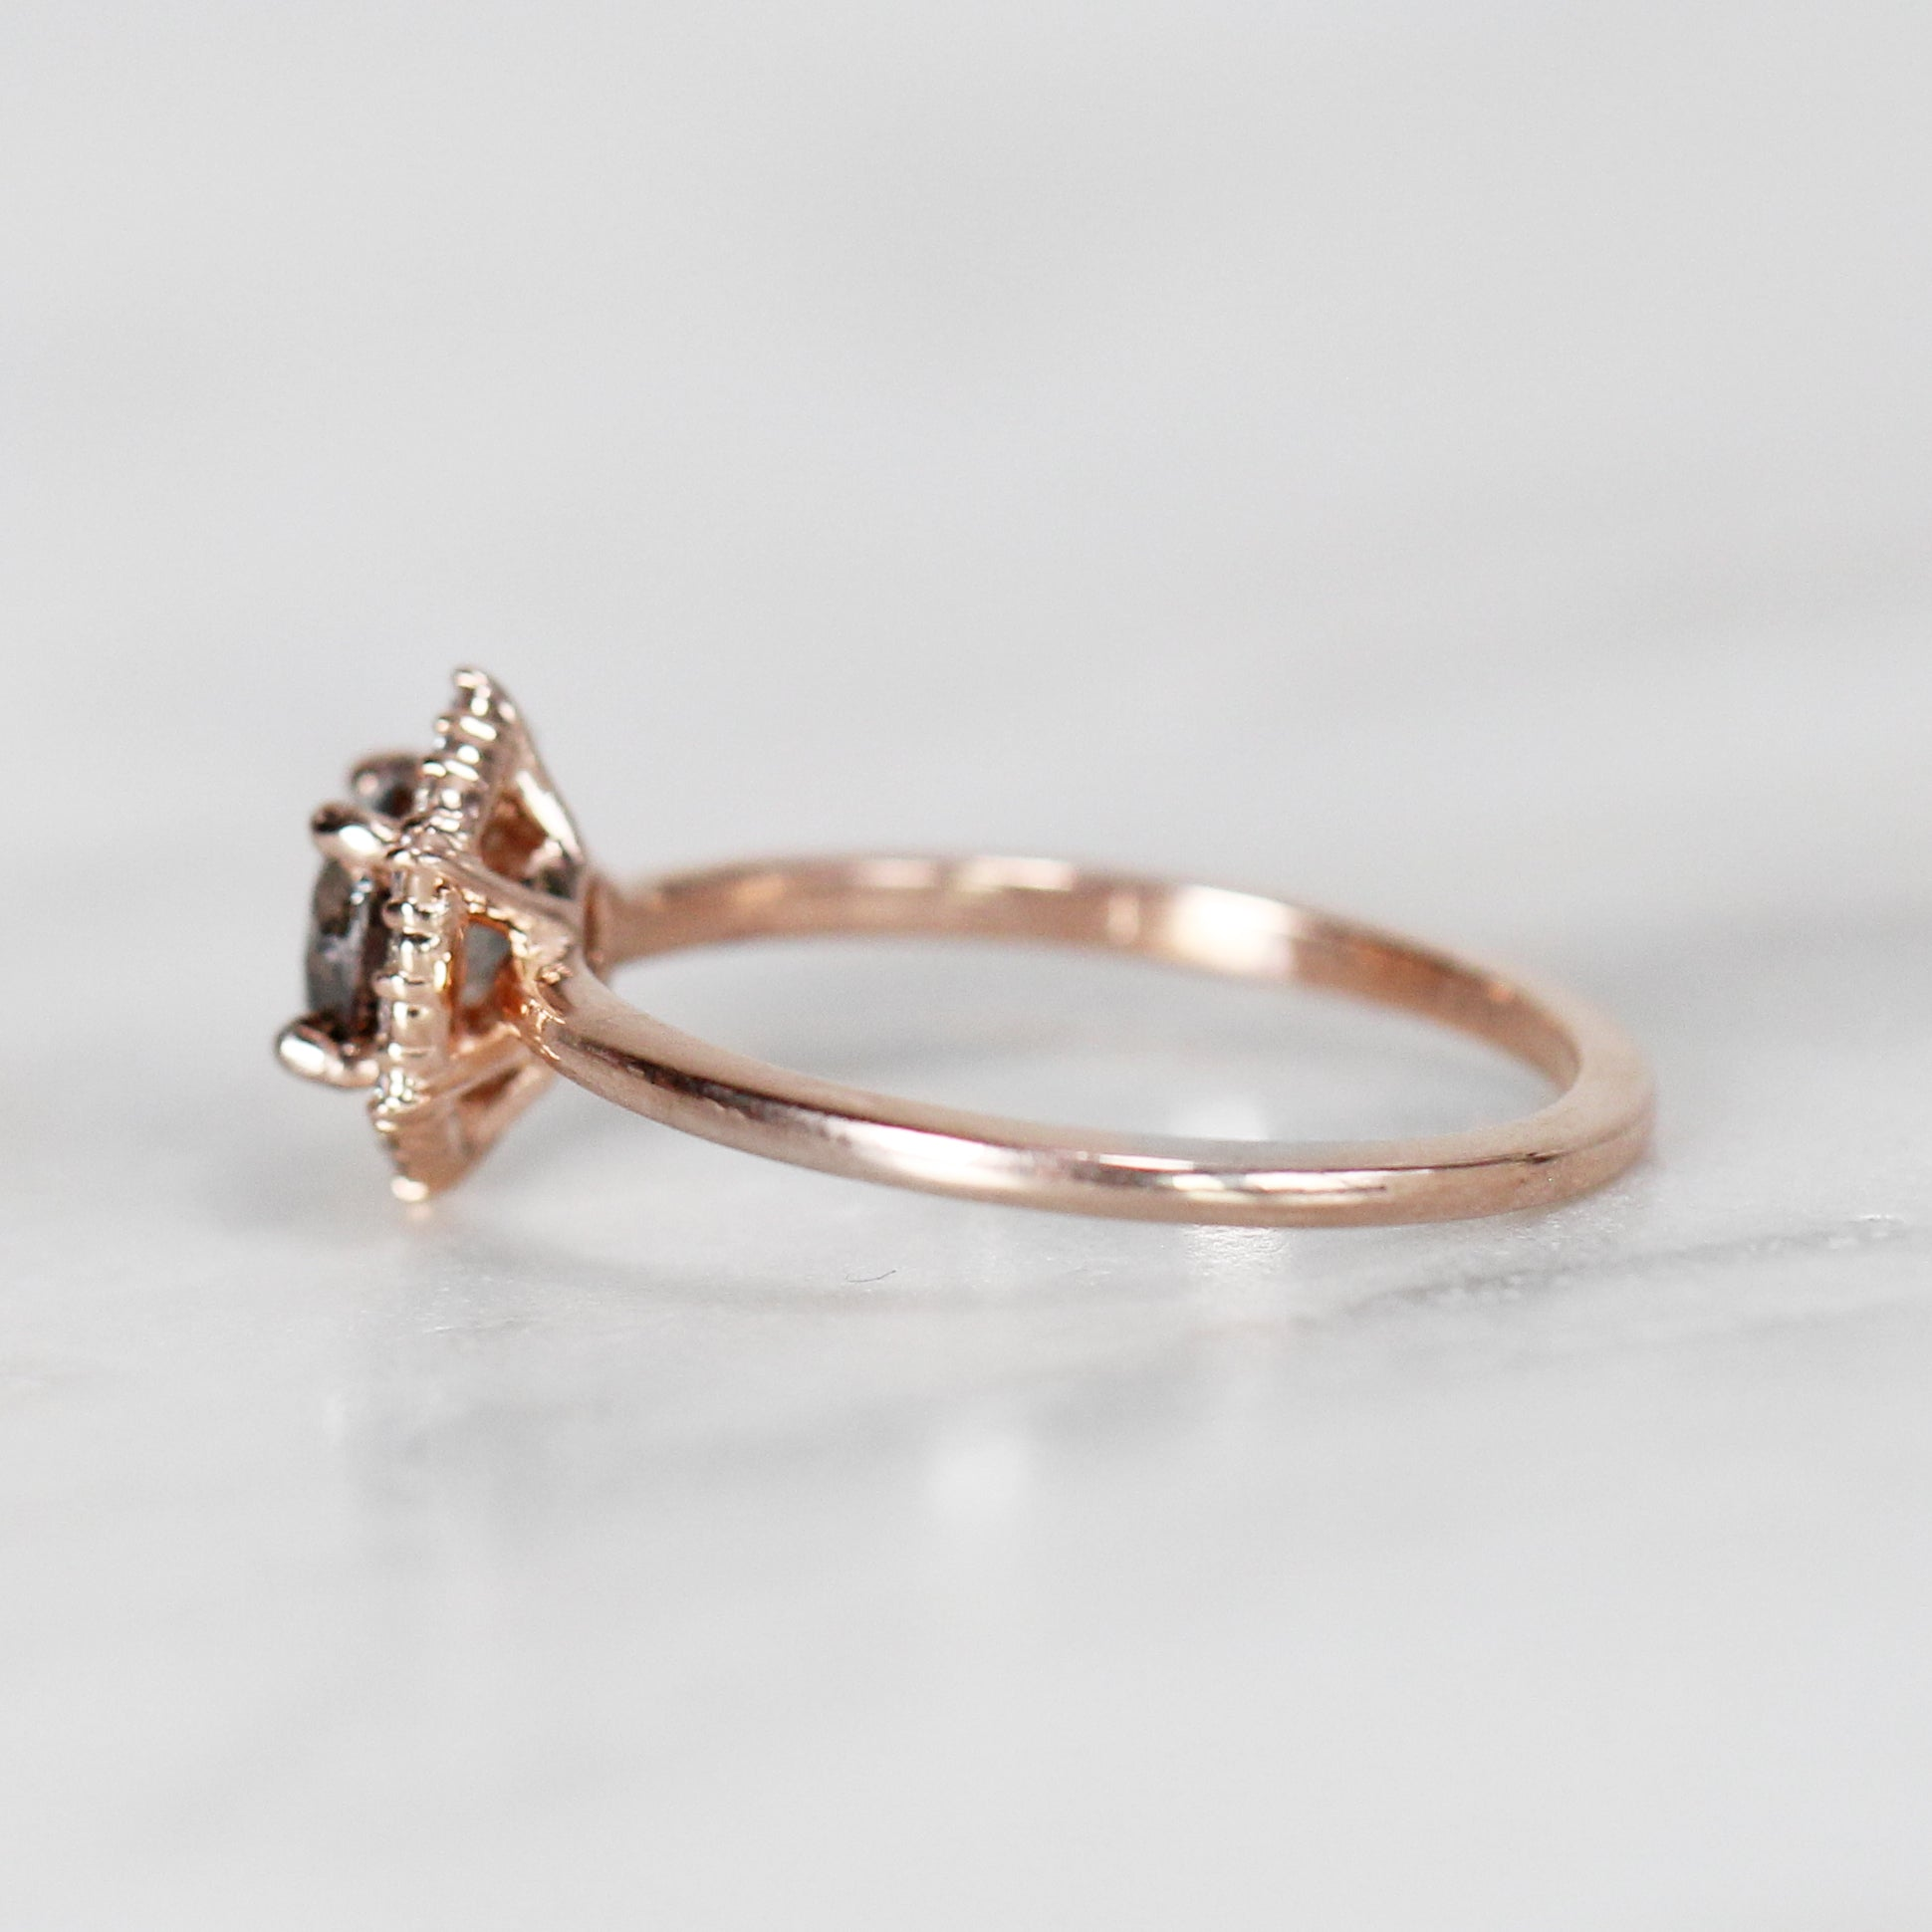 Stella Ring with .75 Carat Round Celestial Diamond in 14k Rose Gold - Ready to size and ship - Celestial Diamonds ® by Midwinter Co.